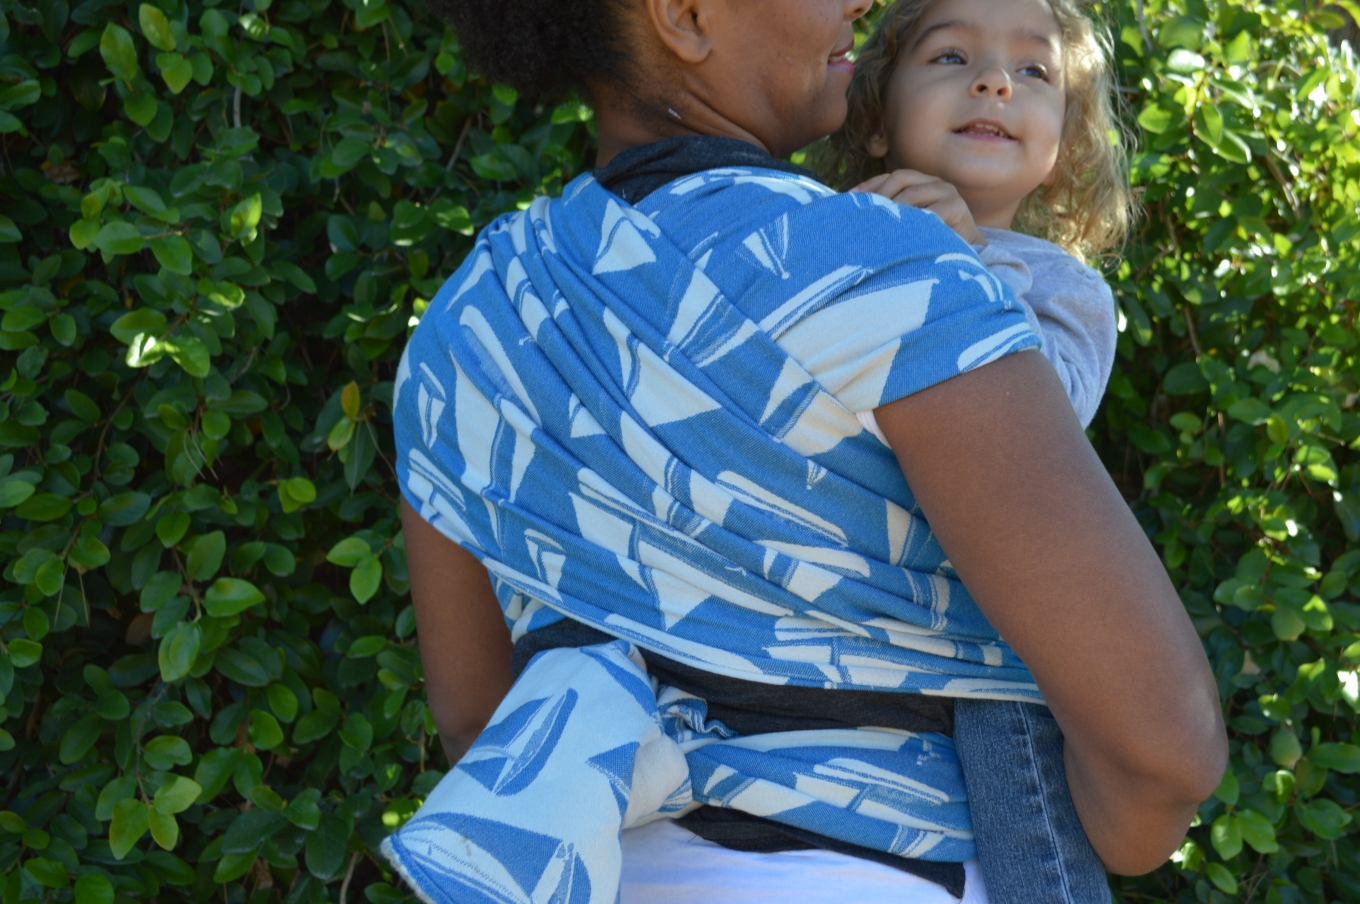 Medium brown natural haired Momma wears her baby on her back in a white and vibrant blue wrap with white sailboats.